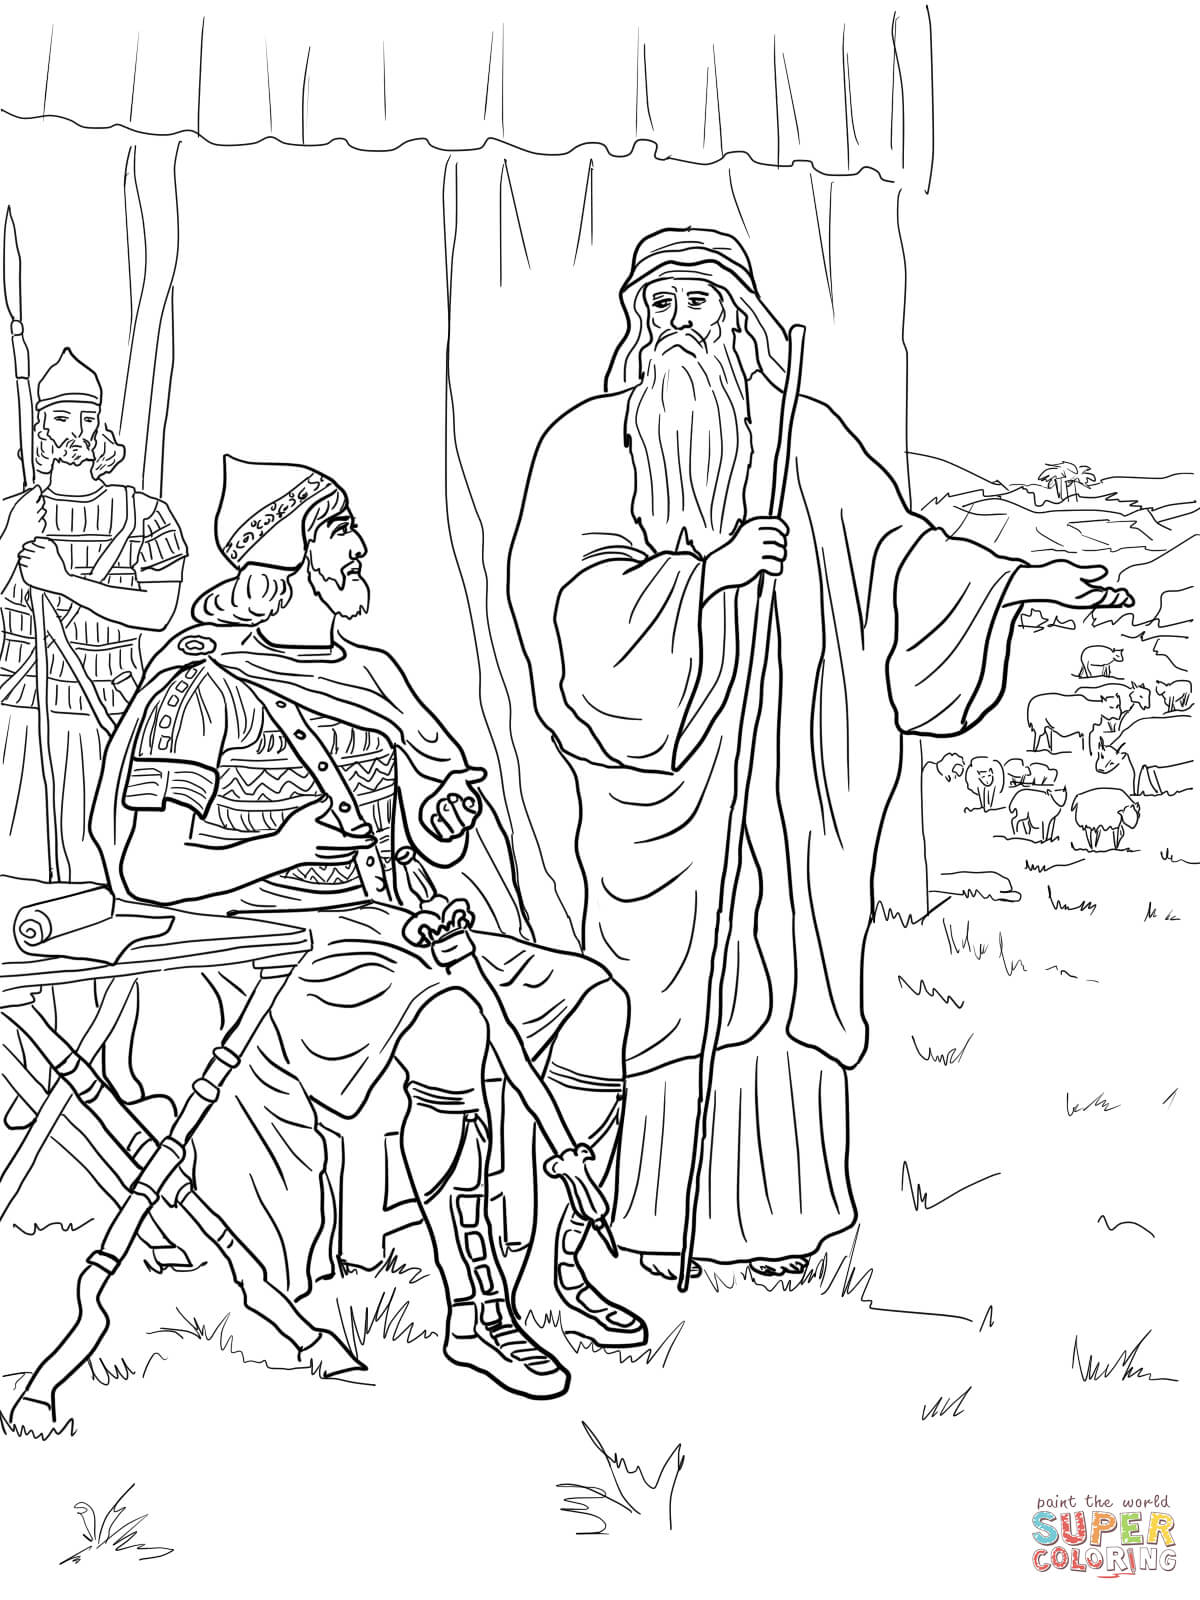 Childrens coloring sheet of saul and ananias - King Saul Coloring Pages Free Coloring Pages